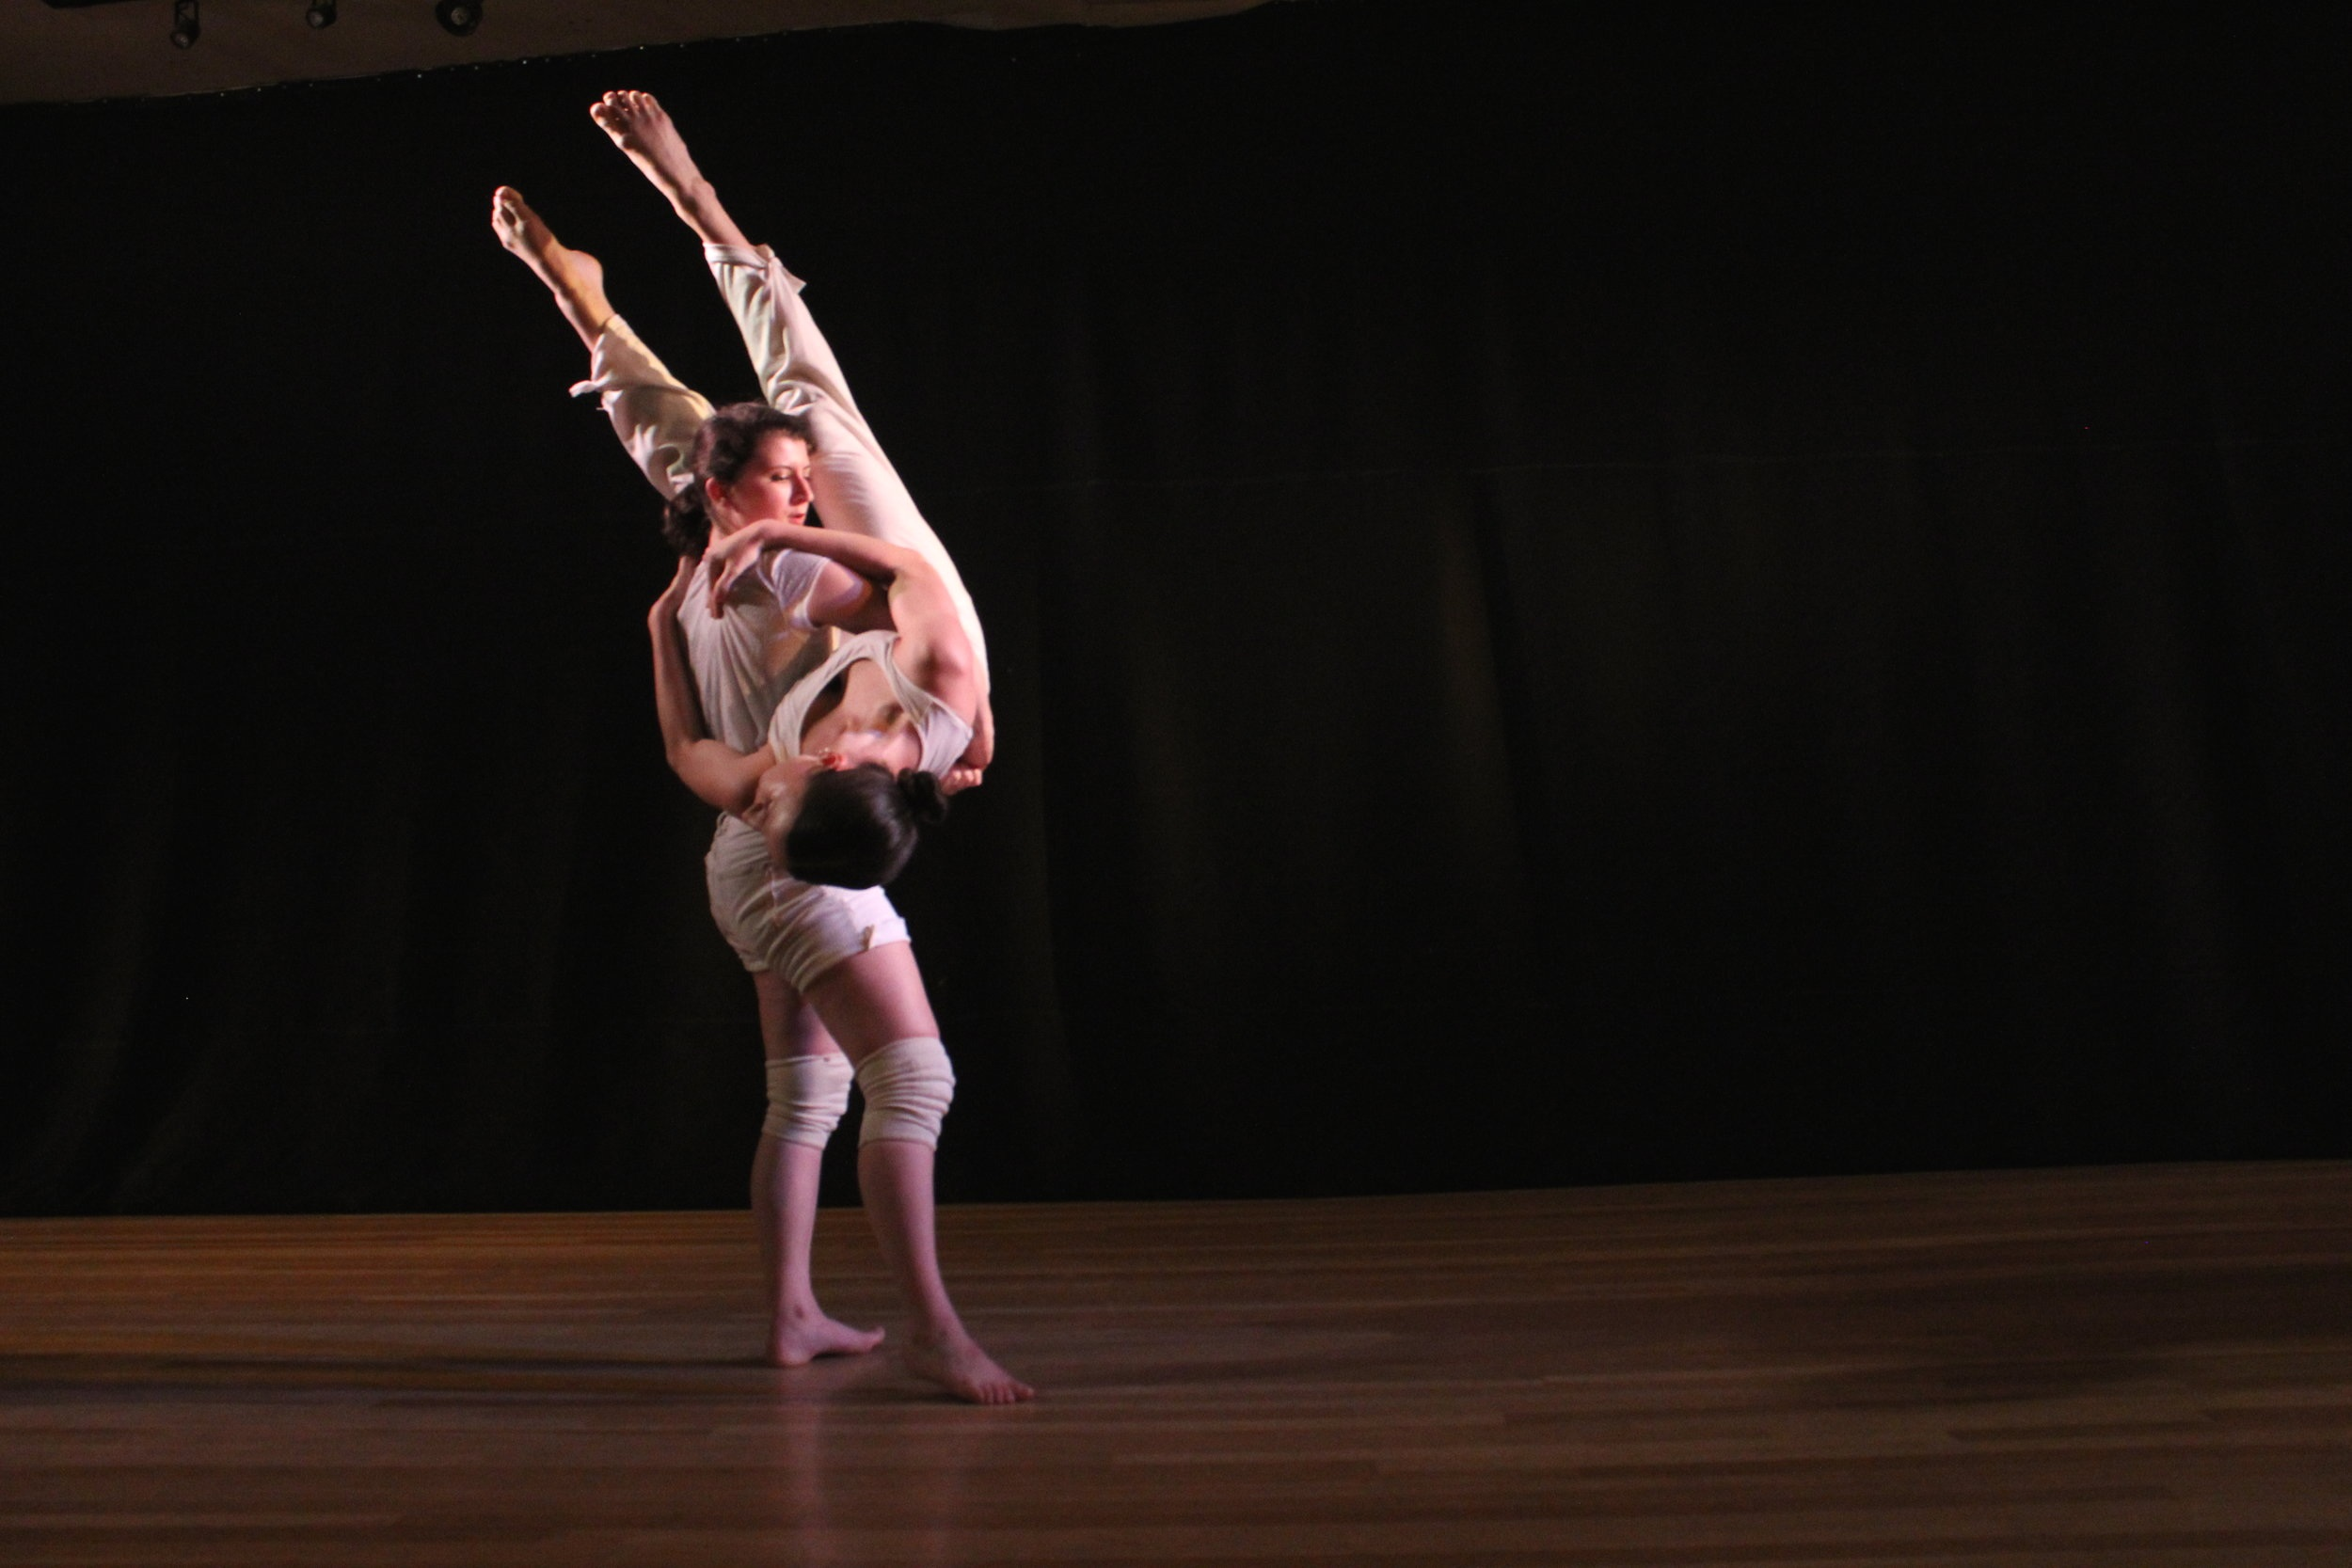 Choreographer:    Evelyn Joy Hoelscher / Spaces of Fontana       Dancers:    Lea Torelli and Madi McGain    Photo by Joseph Heitman of One Day Dance